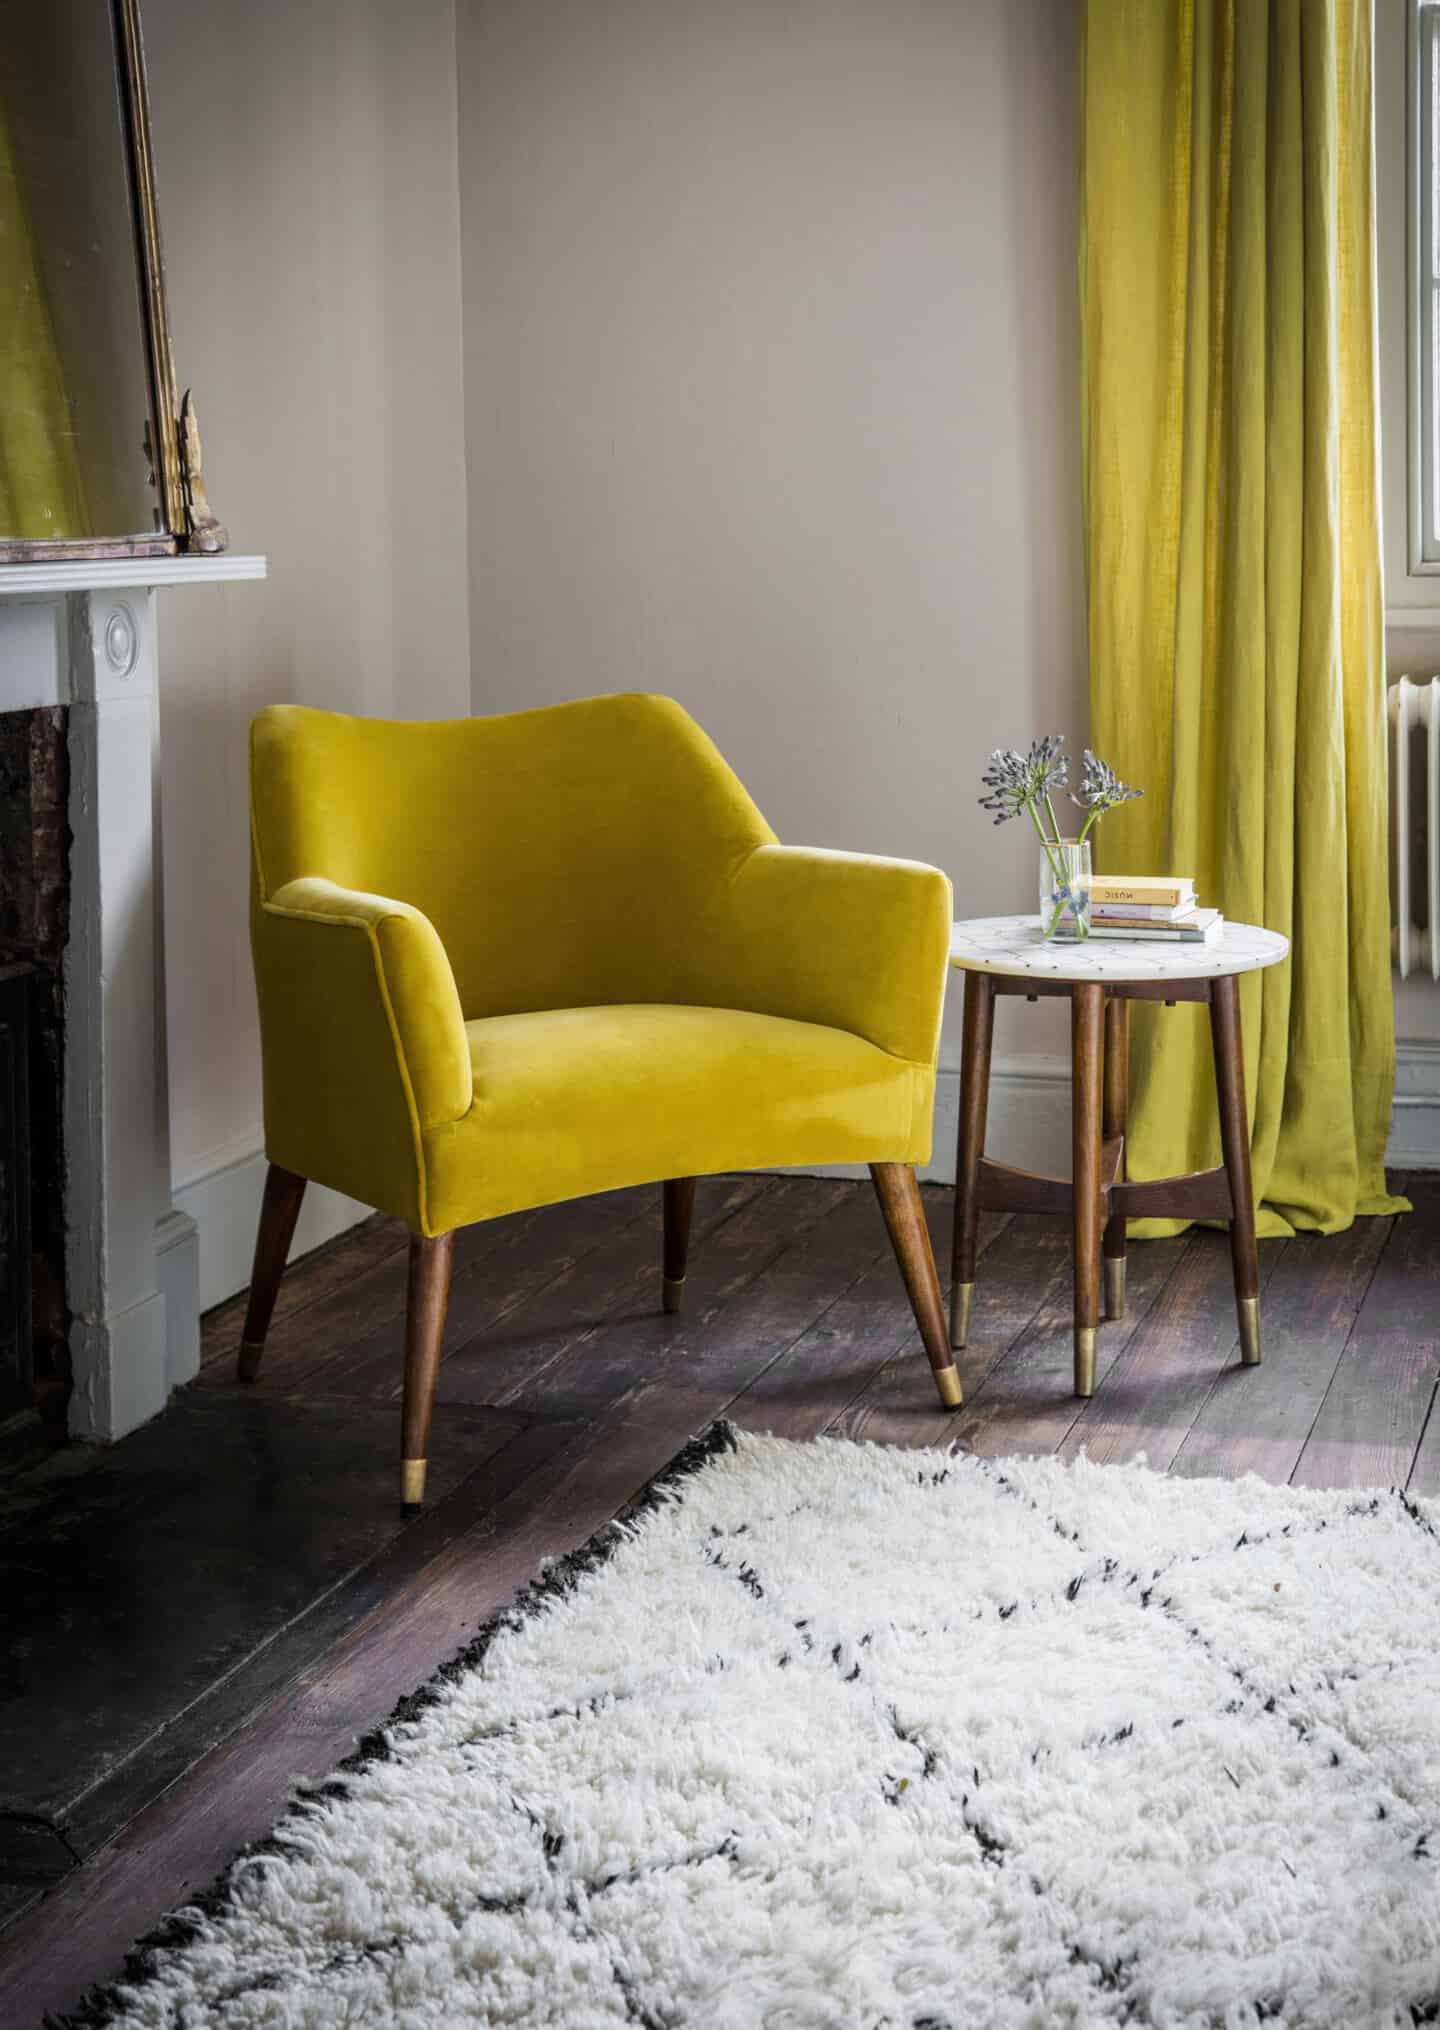 Pantone Colour of the Year 2021 - Illuminating. The colour psychology behind using yellow in interiors. A velvet yellow chair from Atkin & Thyme in the corner of a living room with a side table beside it and yellow curtains behind